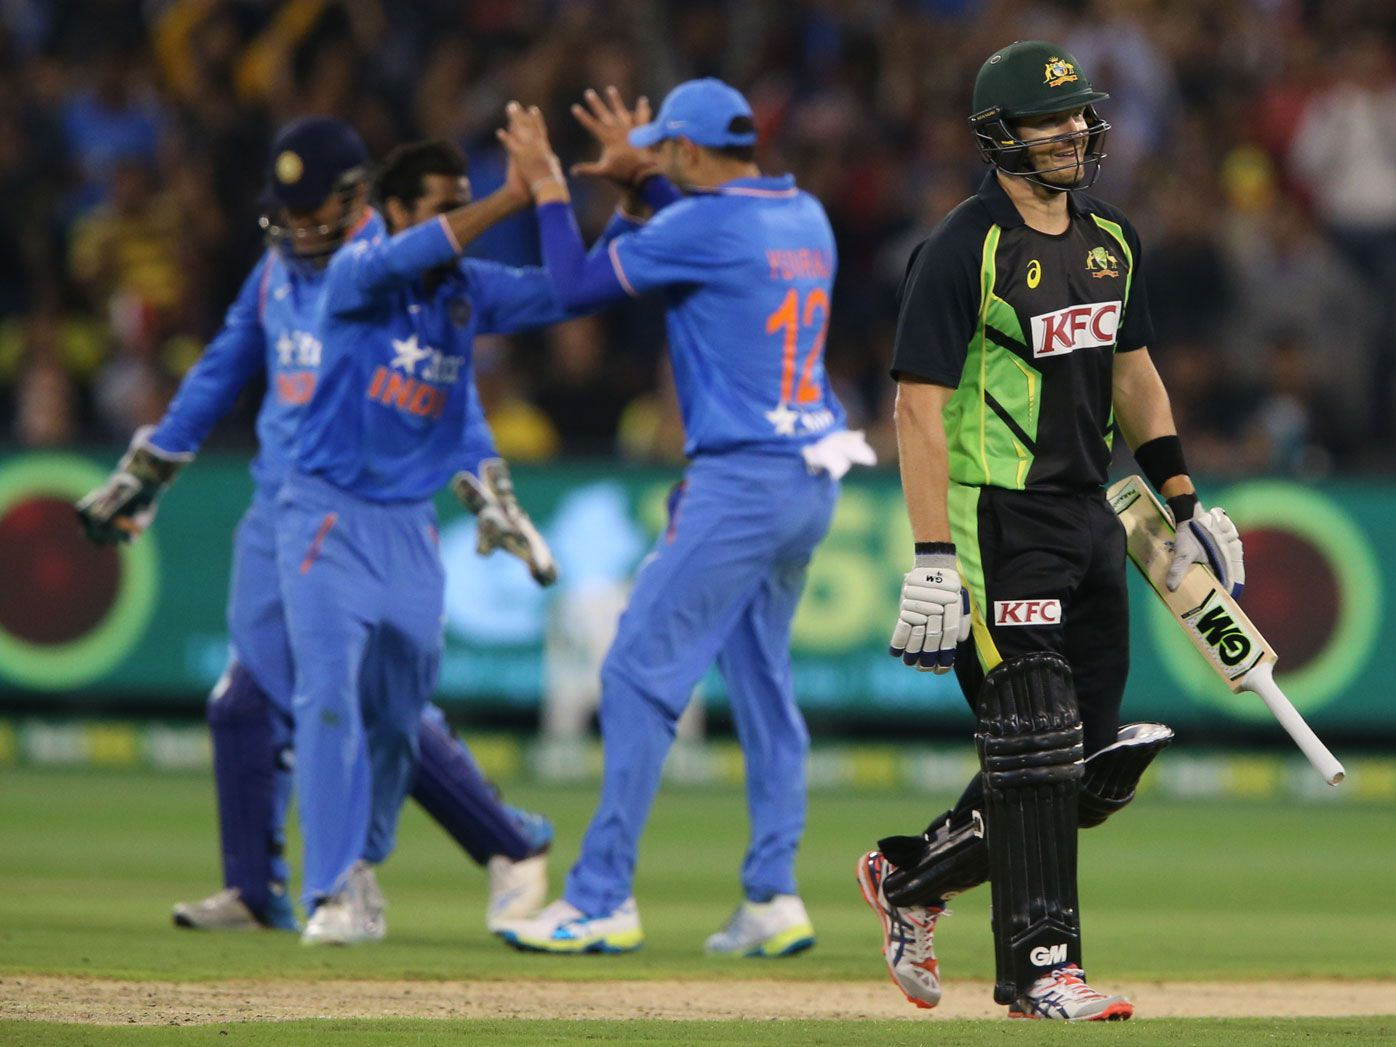 Aussies lose T20 series, Finch hurt